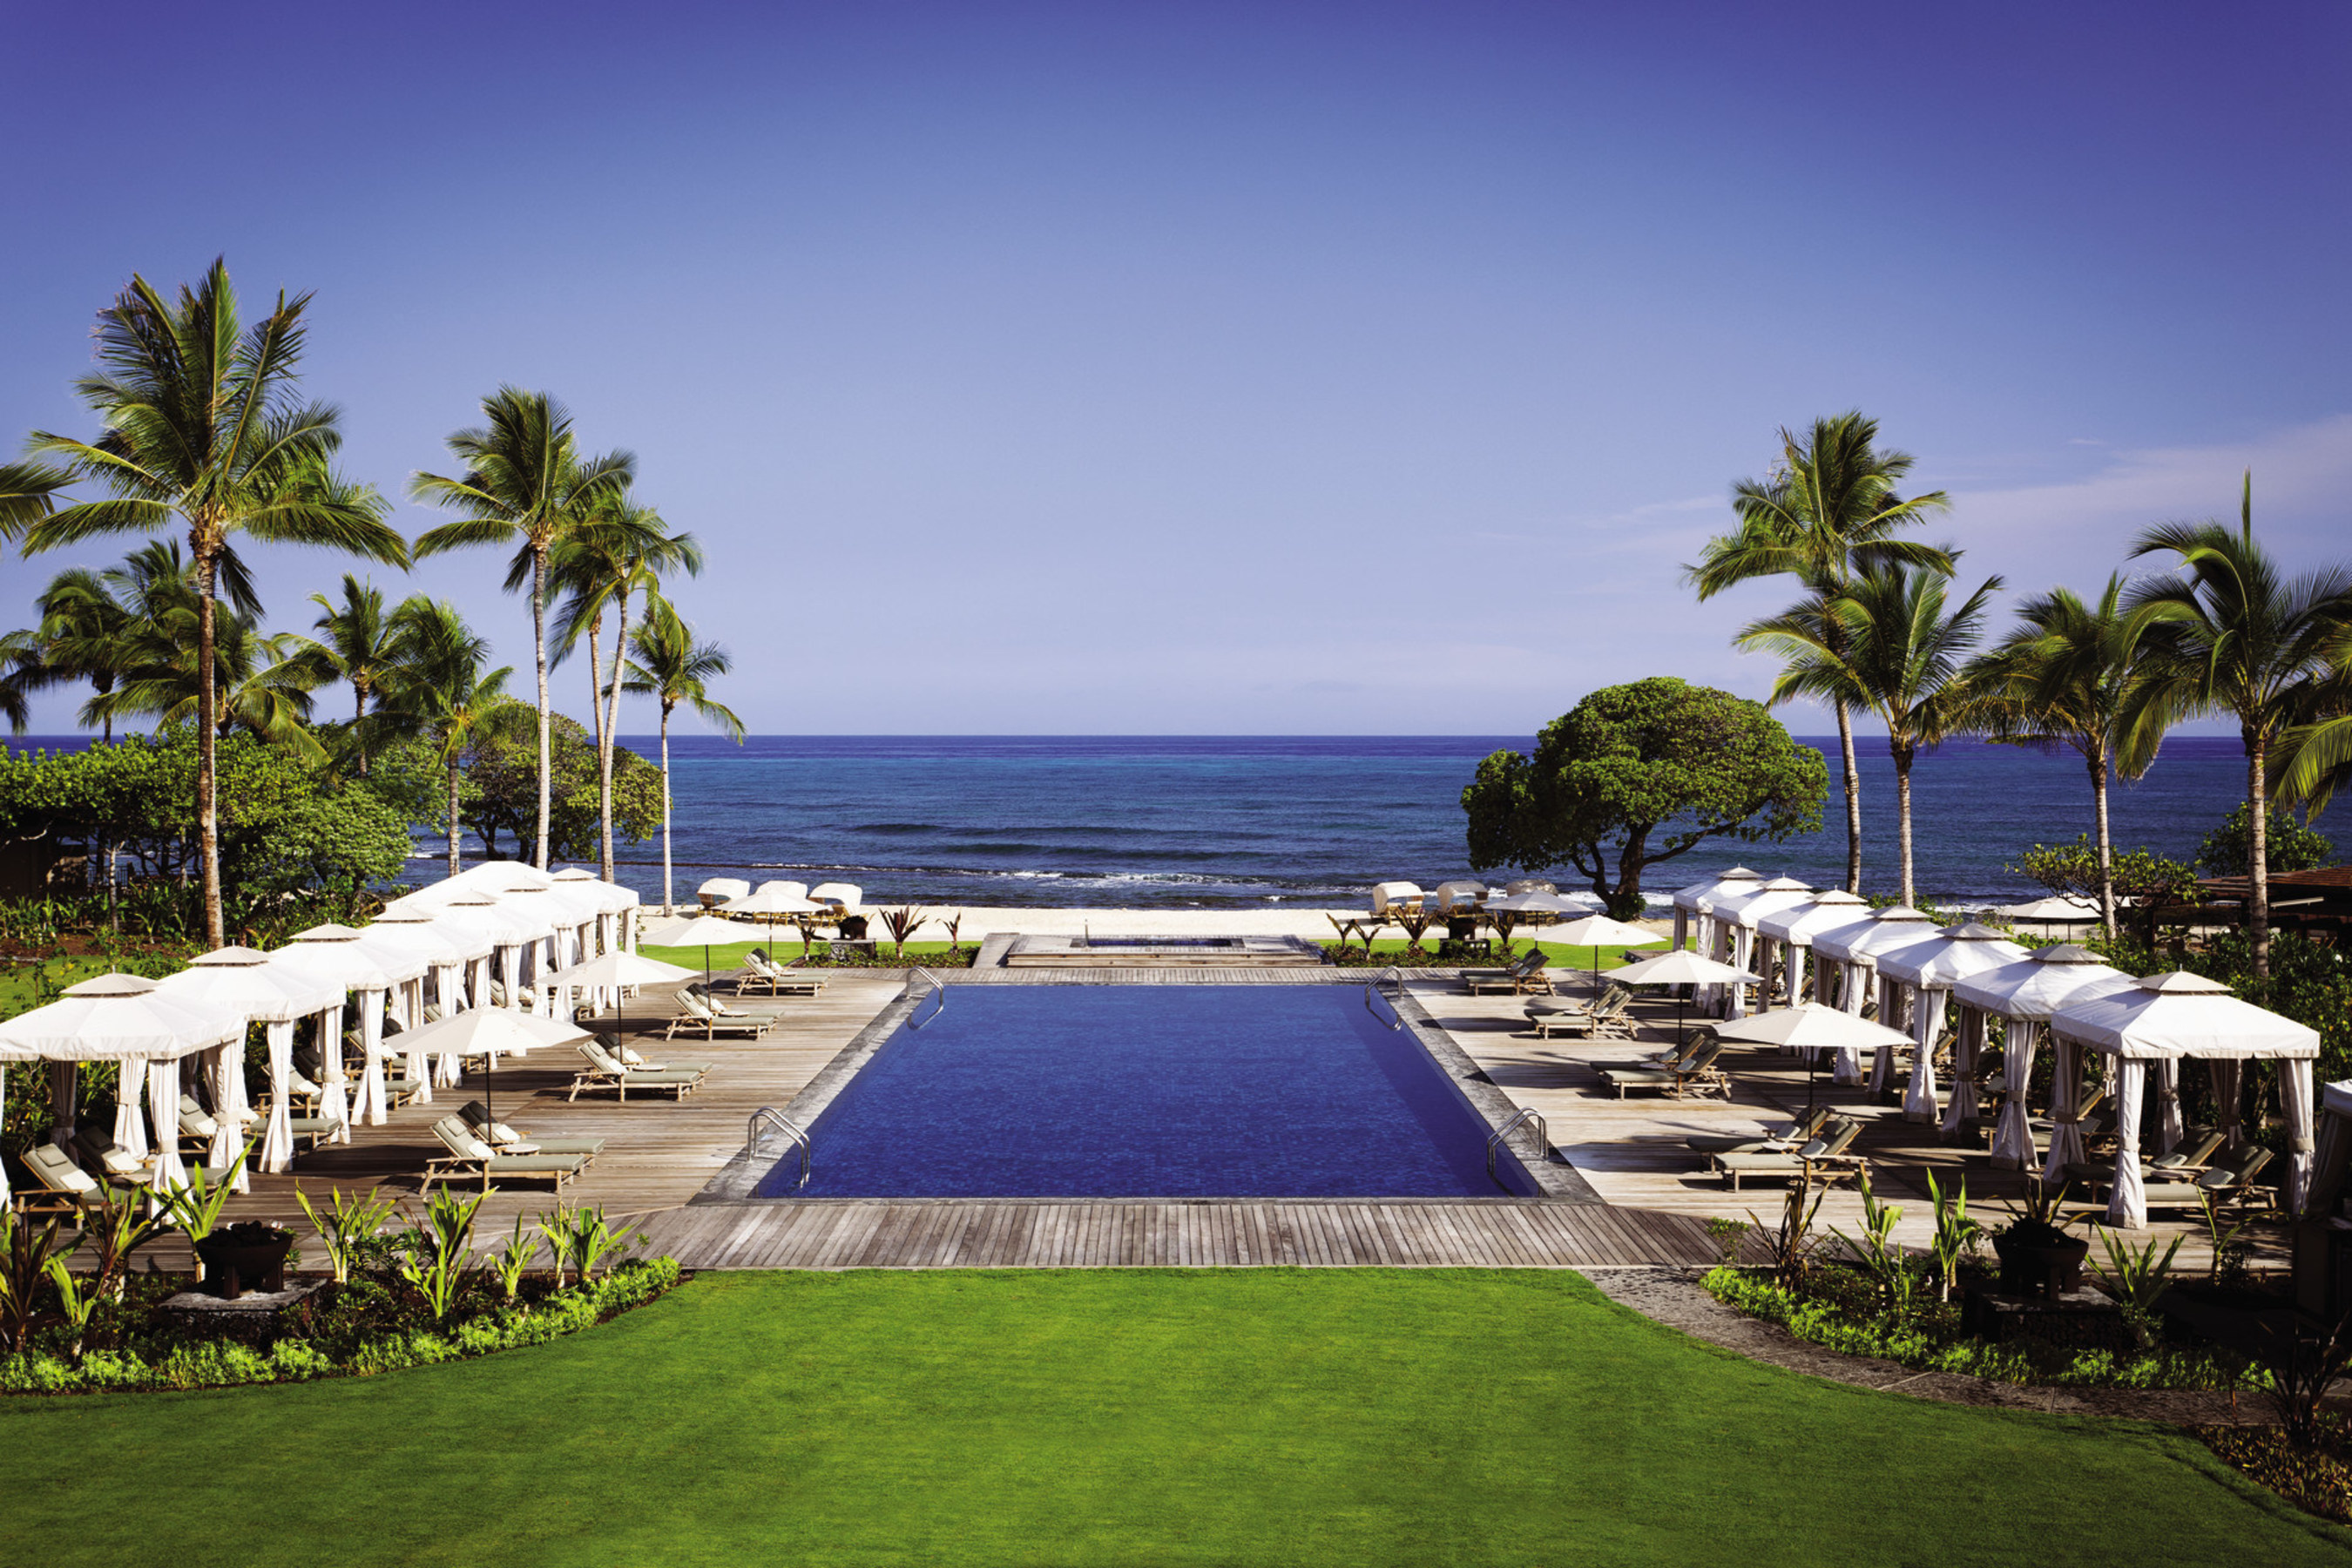 Four Seasons Resort Hualalai, the first and only AAA Five Diamond and Forbes Five Star hotel on Hawaii Island, announces one-of-a-kind Summer 2016 programming, proving a wealth of activities and opportunities for guests to learn, explore and train. The series of diverse offerings has been created to provide guests with even more ways to celebrate their passions this summer season. Programming includes: The Dave Scott Triathlon Experience, Camp Manitou at Hualalai, Wild Wellness Retreats, La Dolce Vita,The Joe McNallay Photography Workshop and The Hawaii Master Artists Series. http://www.fourseasons.com/hualalai/new-for-summer-2016.html